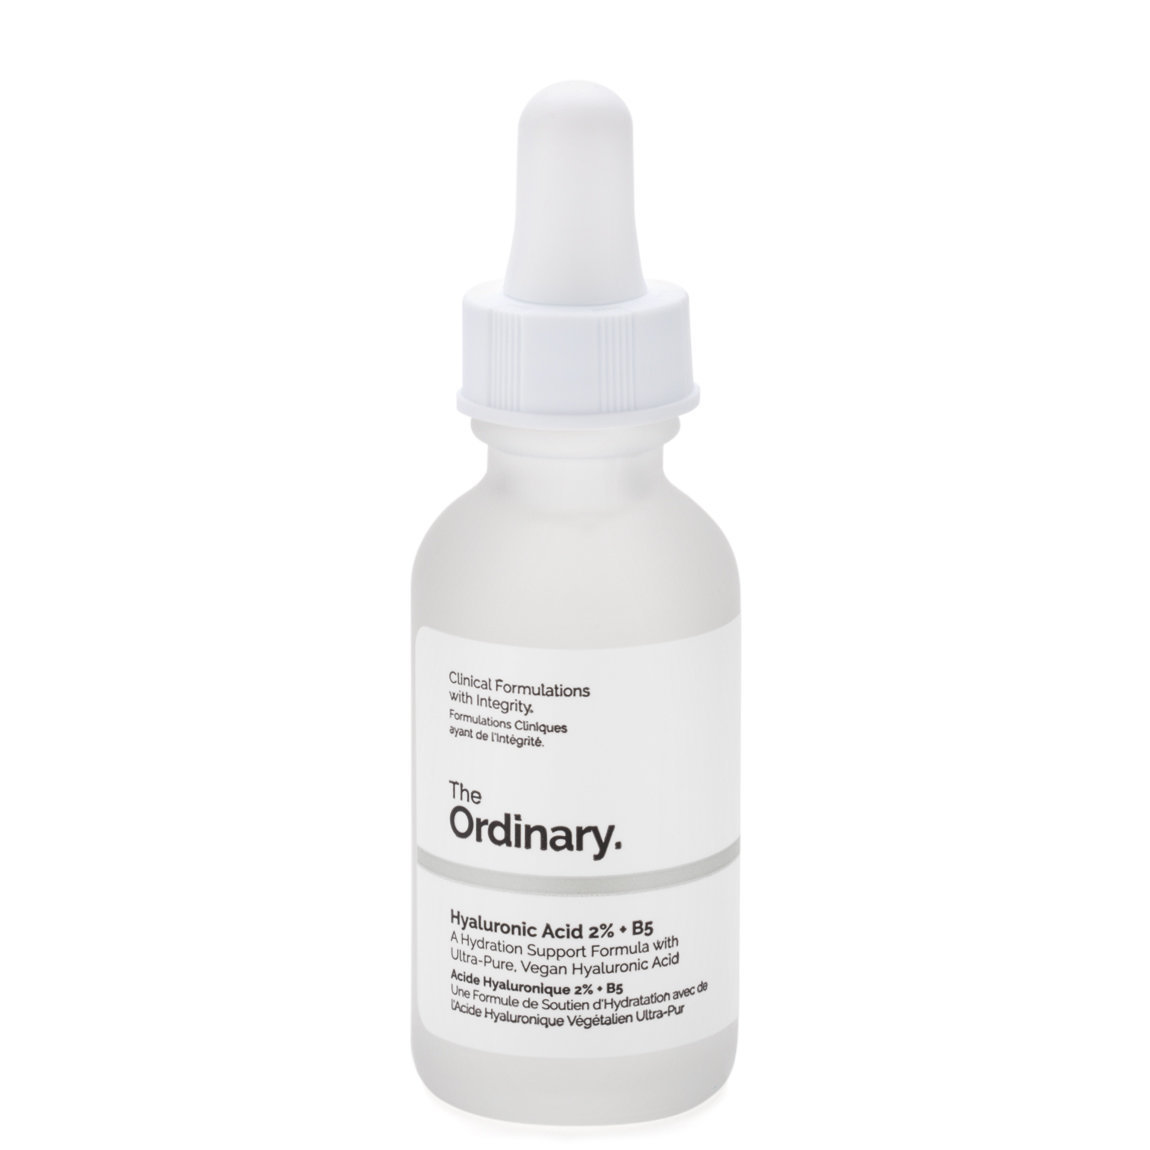 The Ordinary. Hyaluronic Acid 2% + B5 product smear.